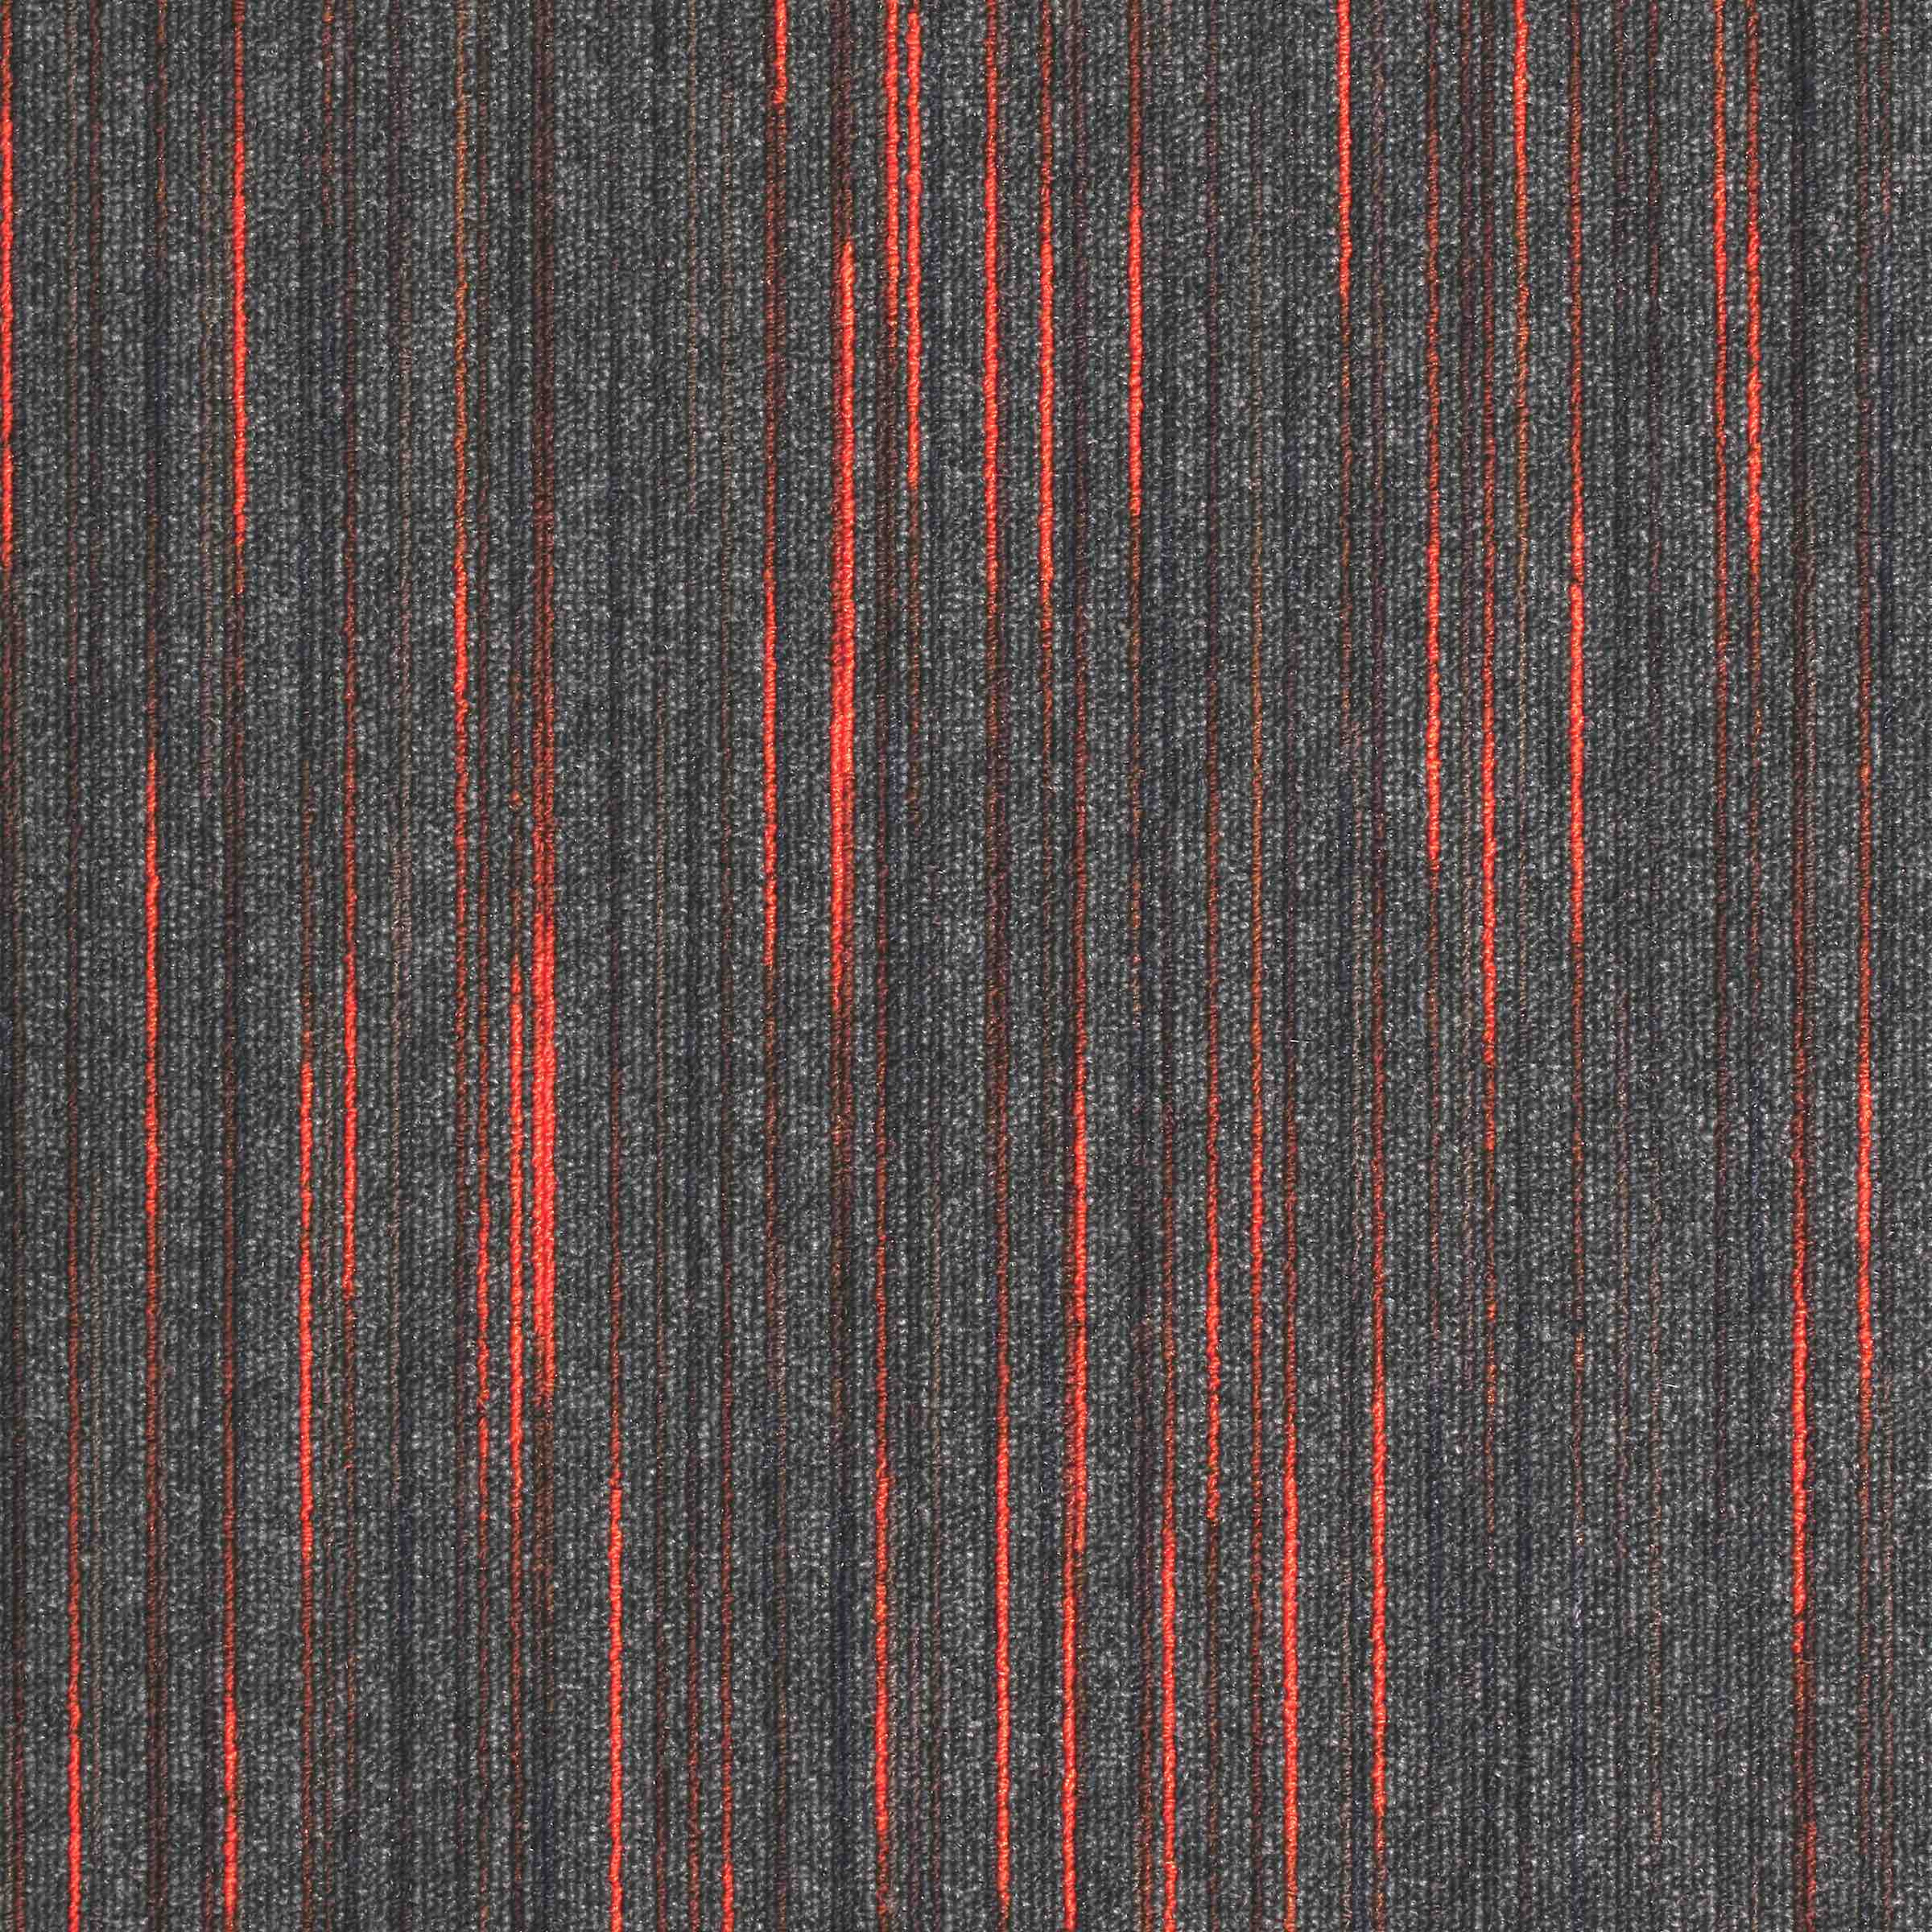 Strobe | Ignite, 2603 | Paragon Carpet Tiles | Commercial Carpet Tiles